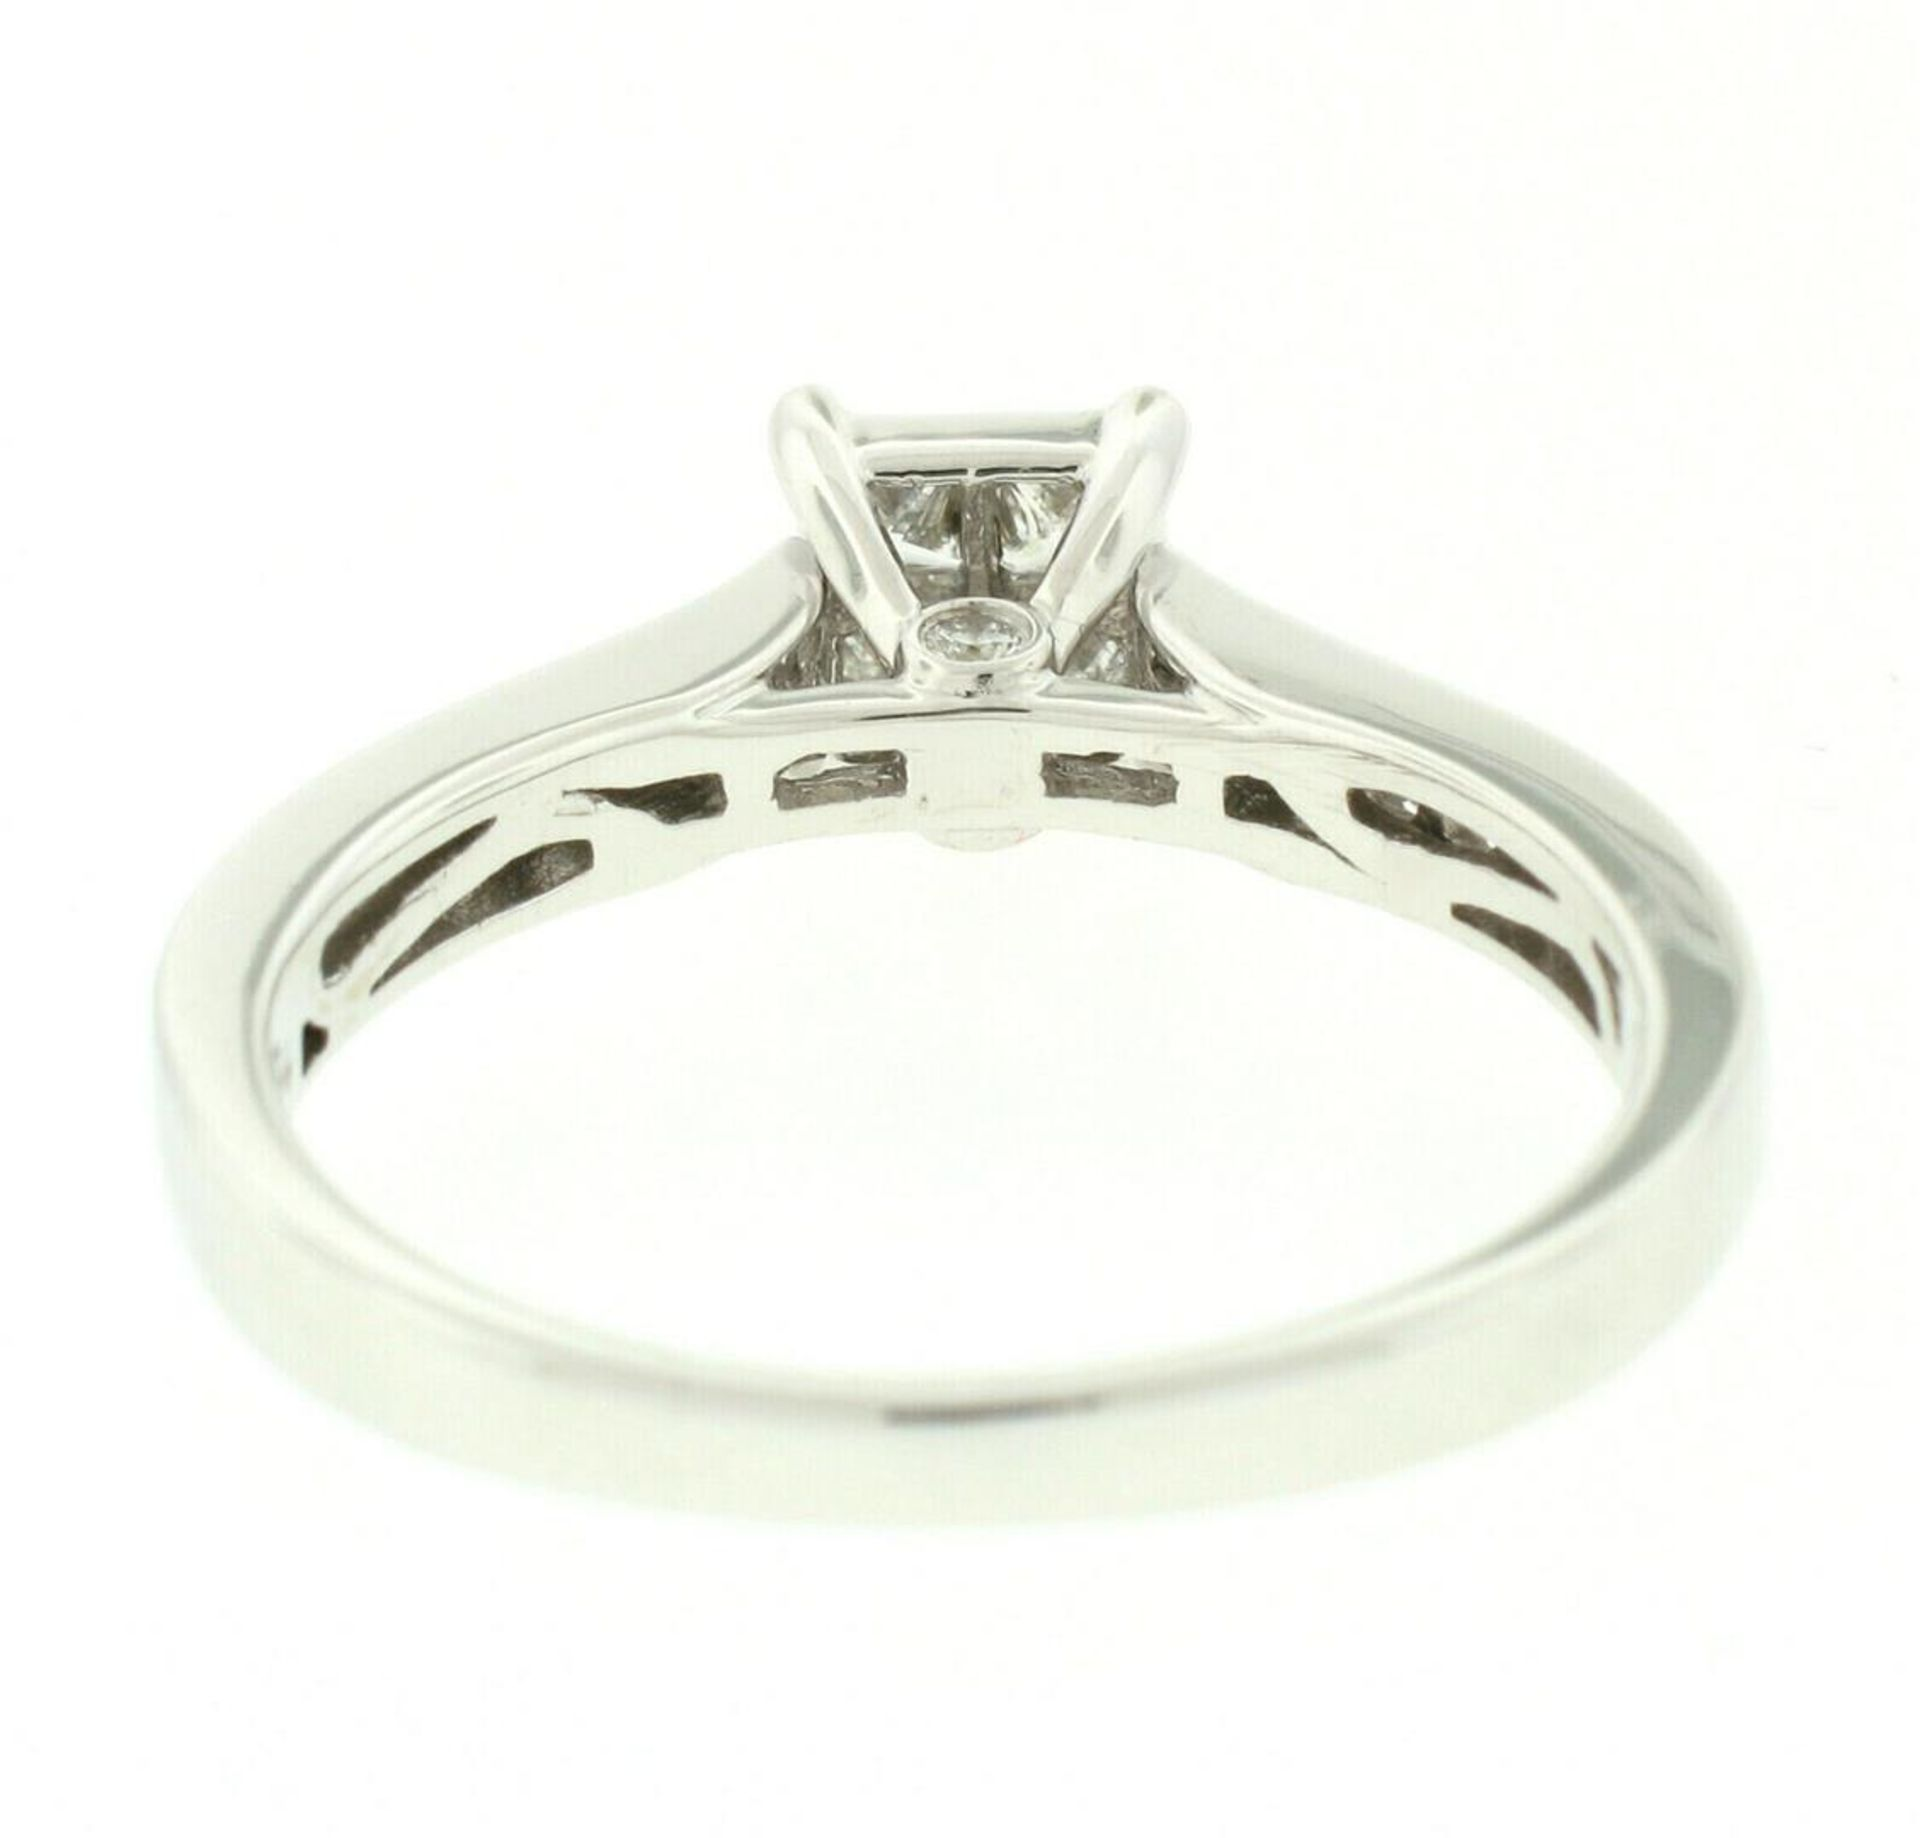 14k White Gold 0.79ctw Illusion Solitaire Princess Cut Diamond Engagement Ring - Image 4 of 8